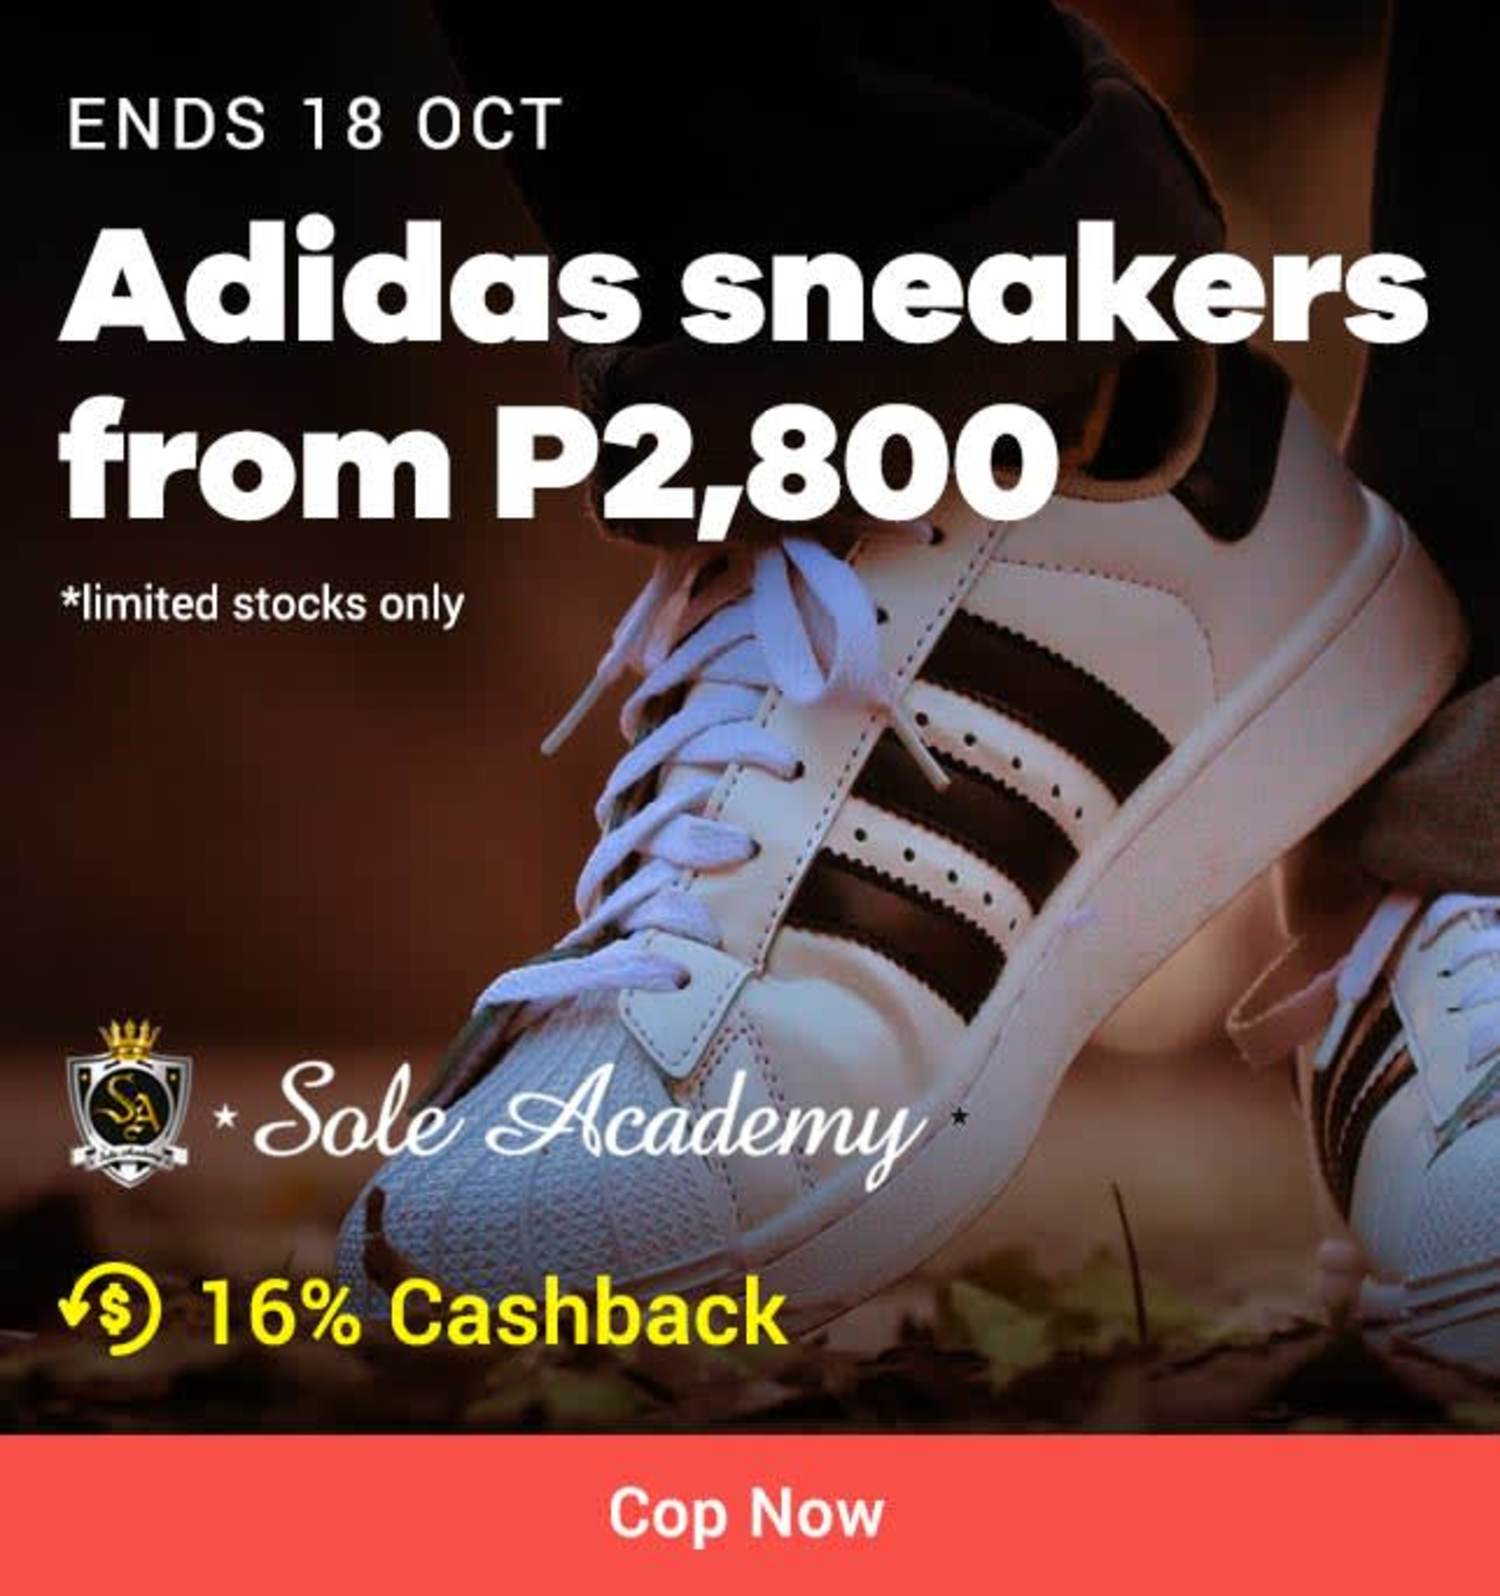 Sole Academy: Adidas sneakers from P2,800